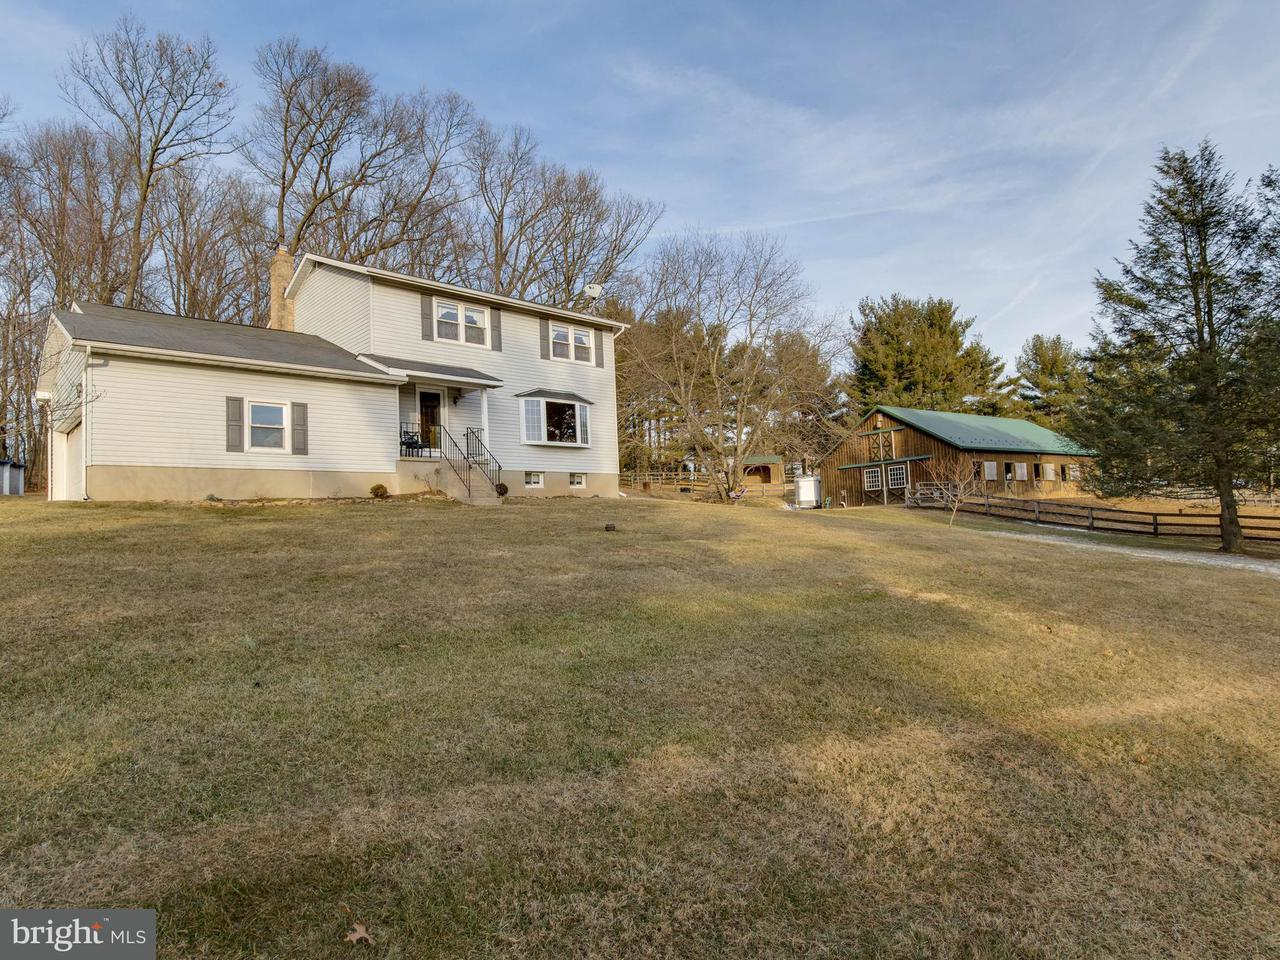 Farm for Sale at 5141 Hoffmanville Rd Millers, Maryland 21102 United States